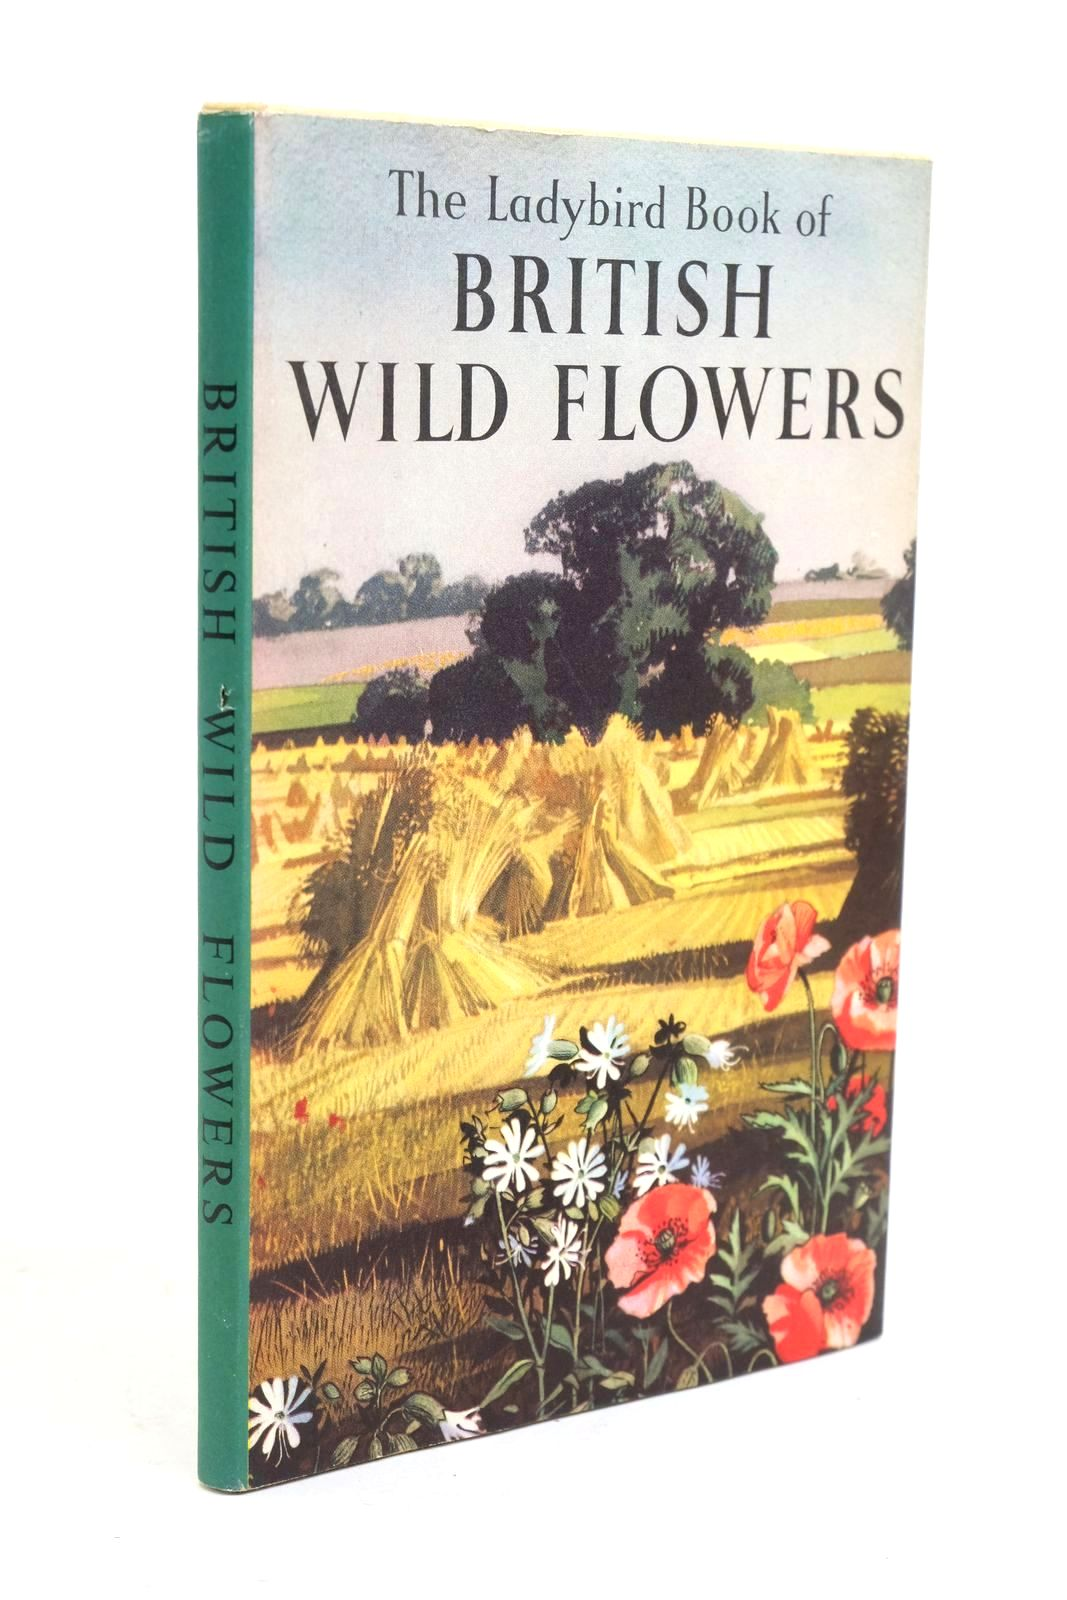 Photo of THE LADYBIRD BOOK OF BRITISH WILD FLOWERS written by Vesey-Fitzgerald, Brian illustrated by Hilder, Rowland Hilder, Edith published by Wills & Hepworth Ltd. (STOCK CODE: 1321171)  for sale by Stella & Rose's Books